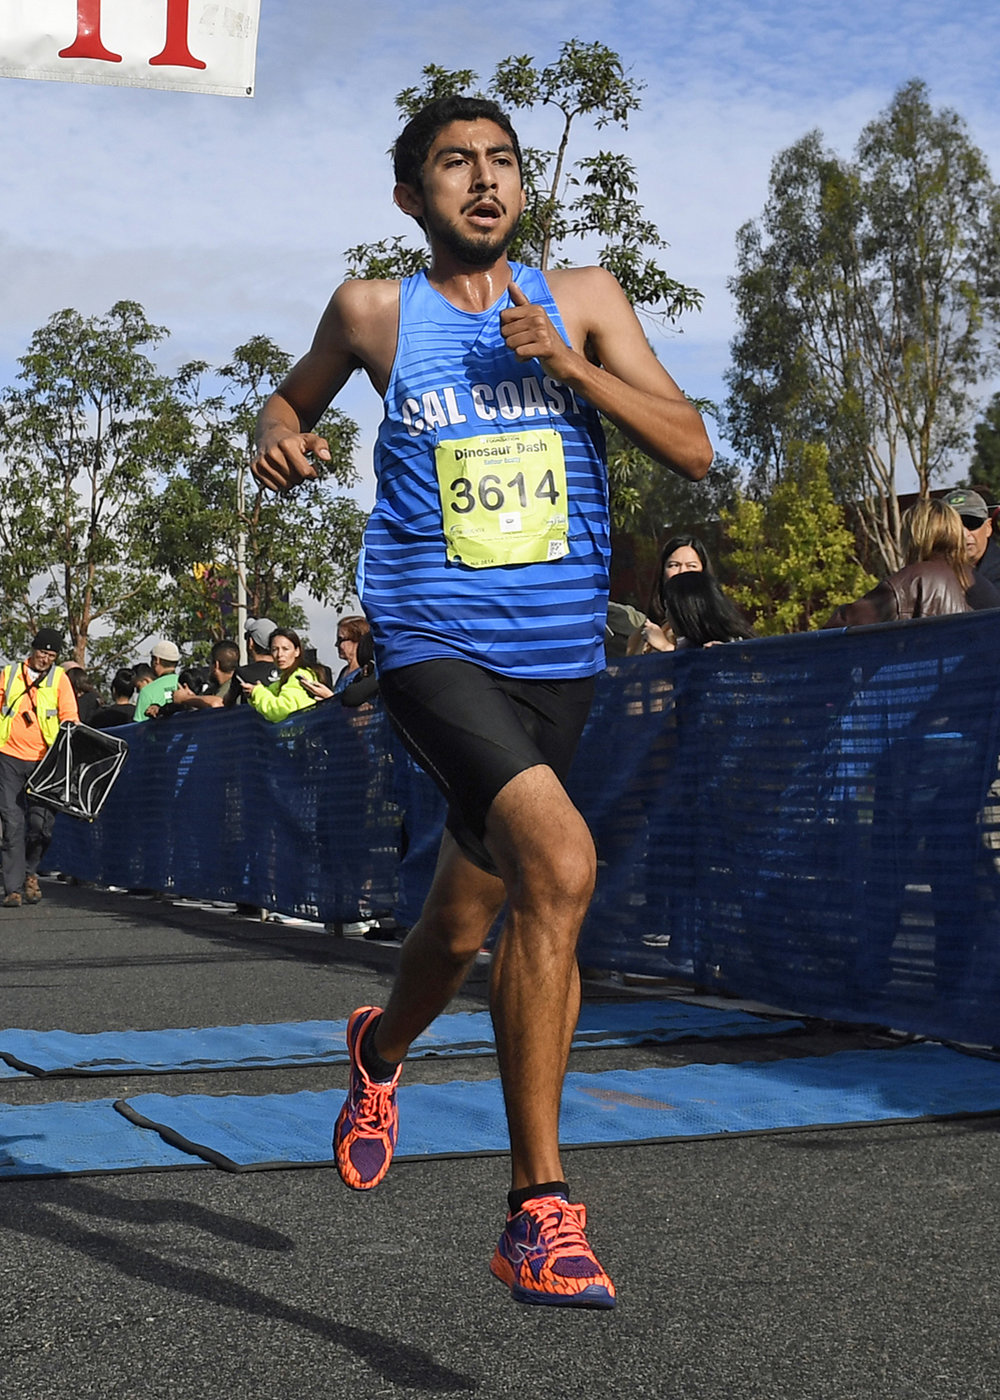 Jose Penaloza - Personal Record in the 3000 meters of 8:40Personal Record in the 5000 meters of 14:46Personal Record in the 8000 meters of 24:42Personal Record in the 10,000 meters of 30:38Personal Record in the Half Marathon of 1:11:58